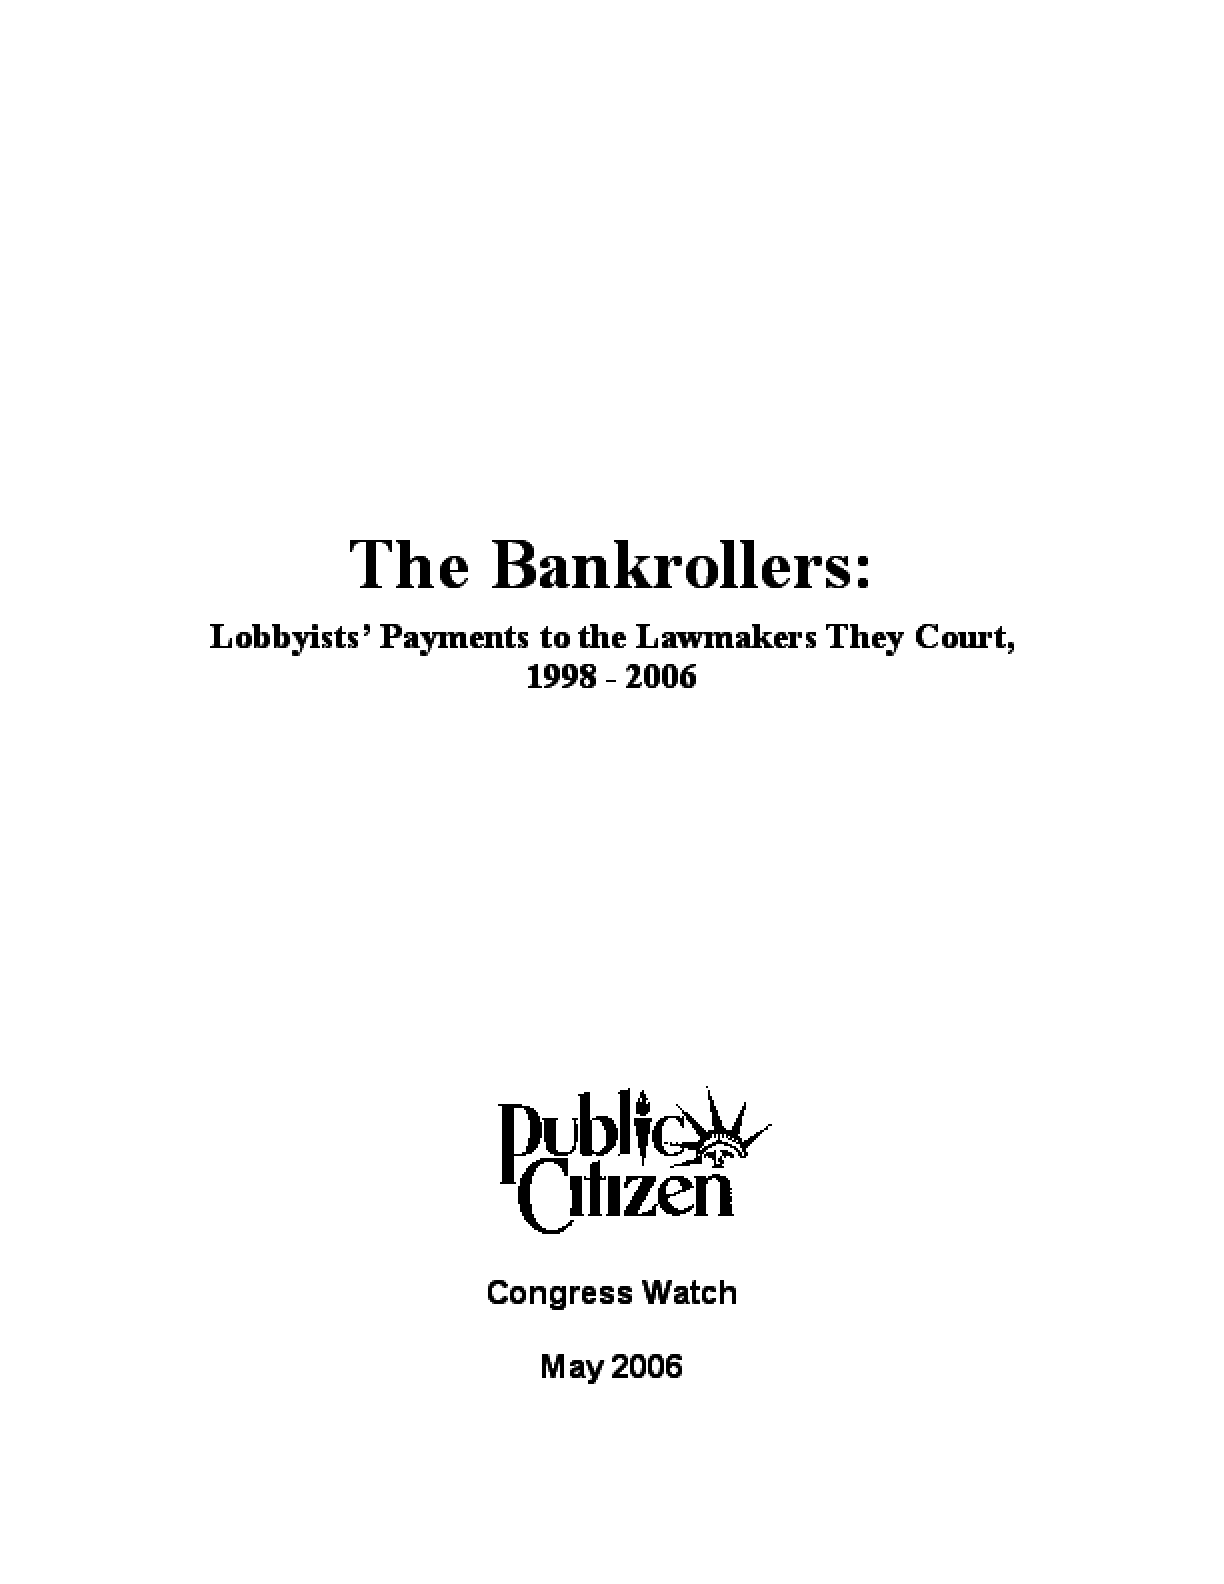 Bankrollers: Lobbyists' Payments to the Lawmakers they Court, 1998-2006